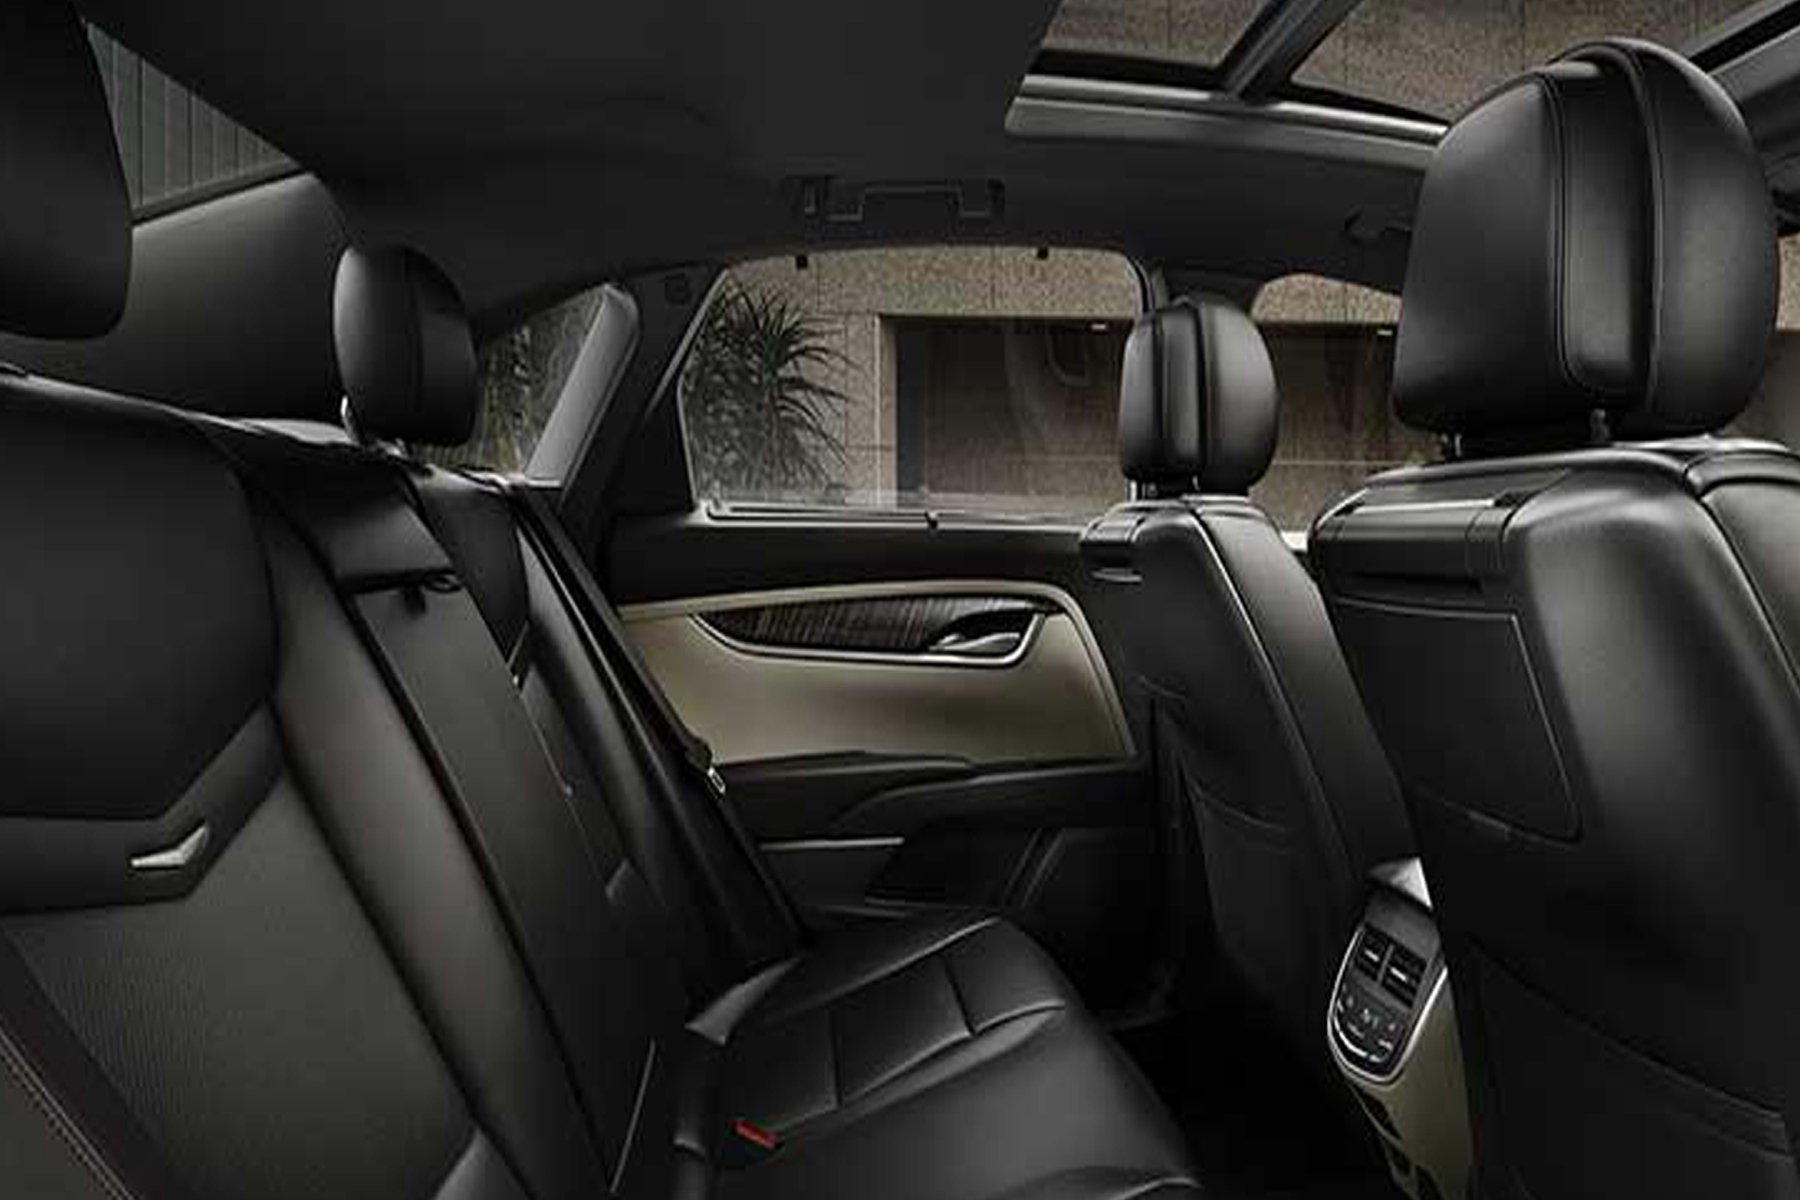 Skyline Chicago Limo Cars Luxury Fleet Black Cadillac XTS Interior October 2020